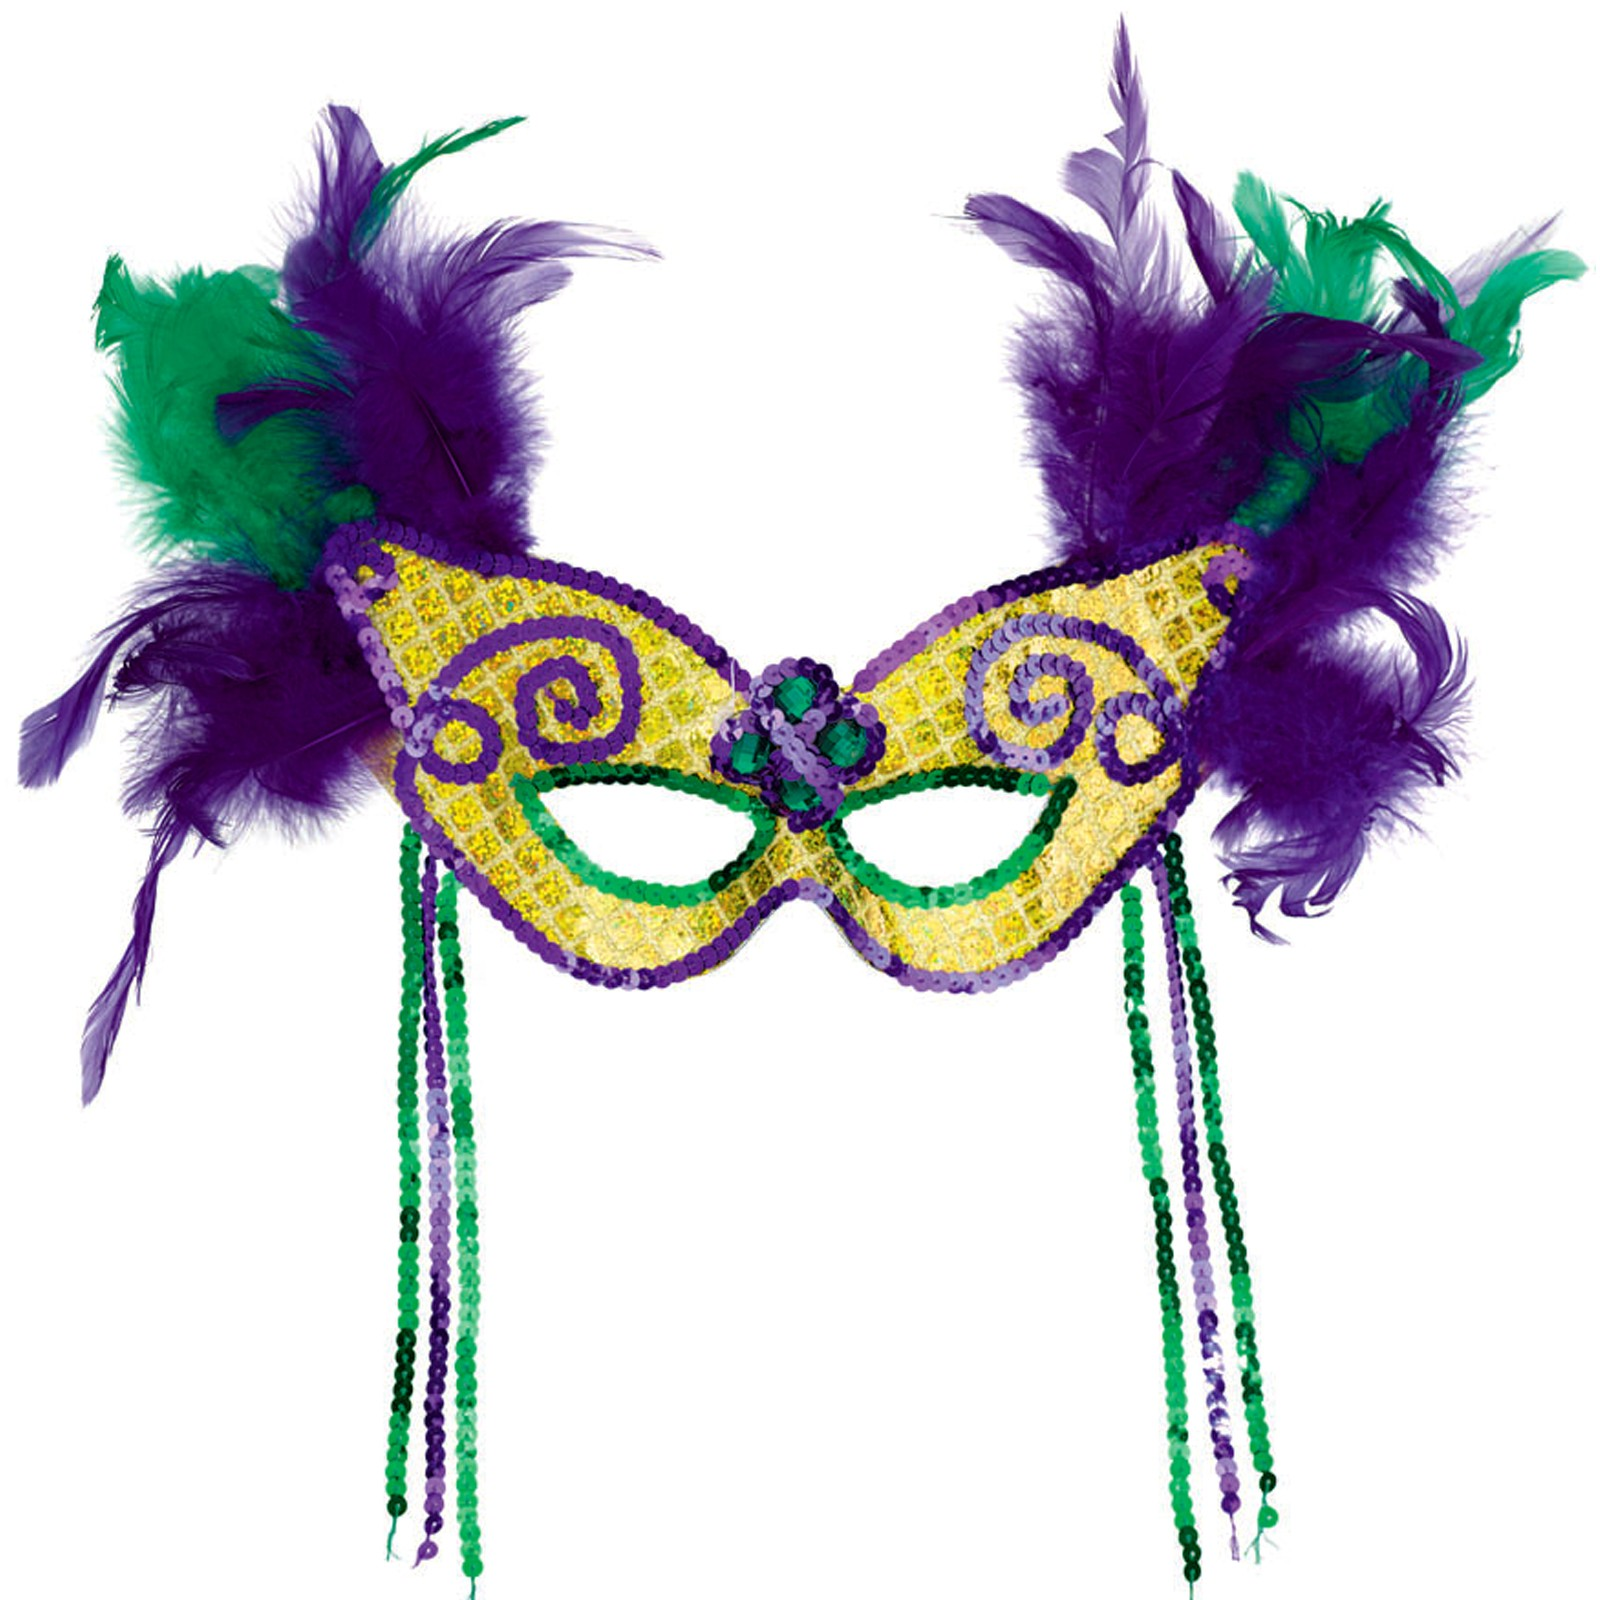 Mardi Gras Parade Clip Art Free Beautiful mardi gras masks